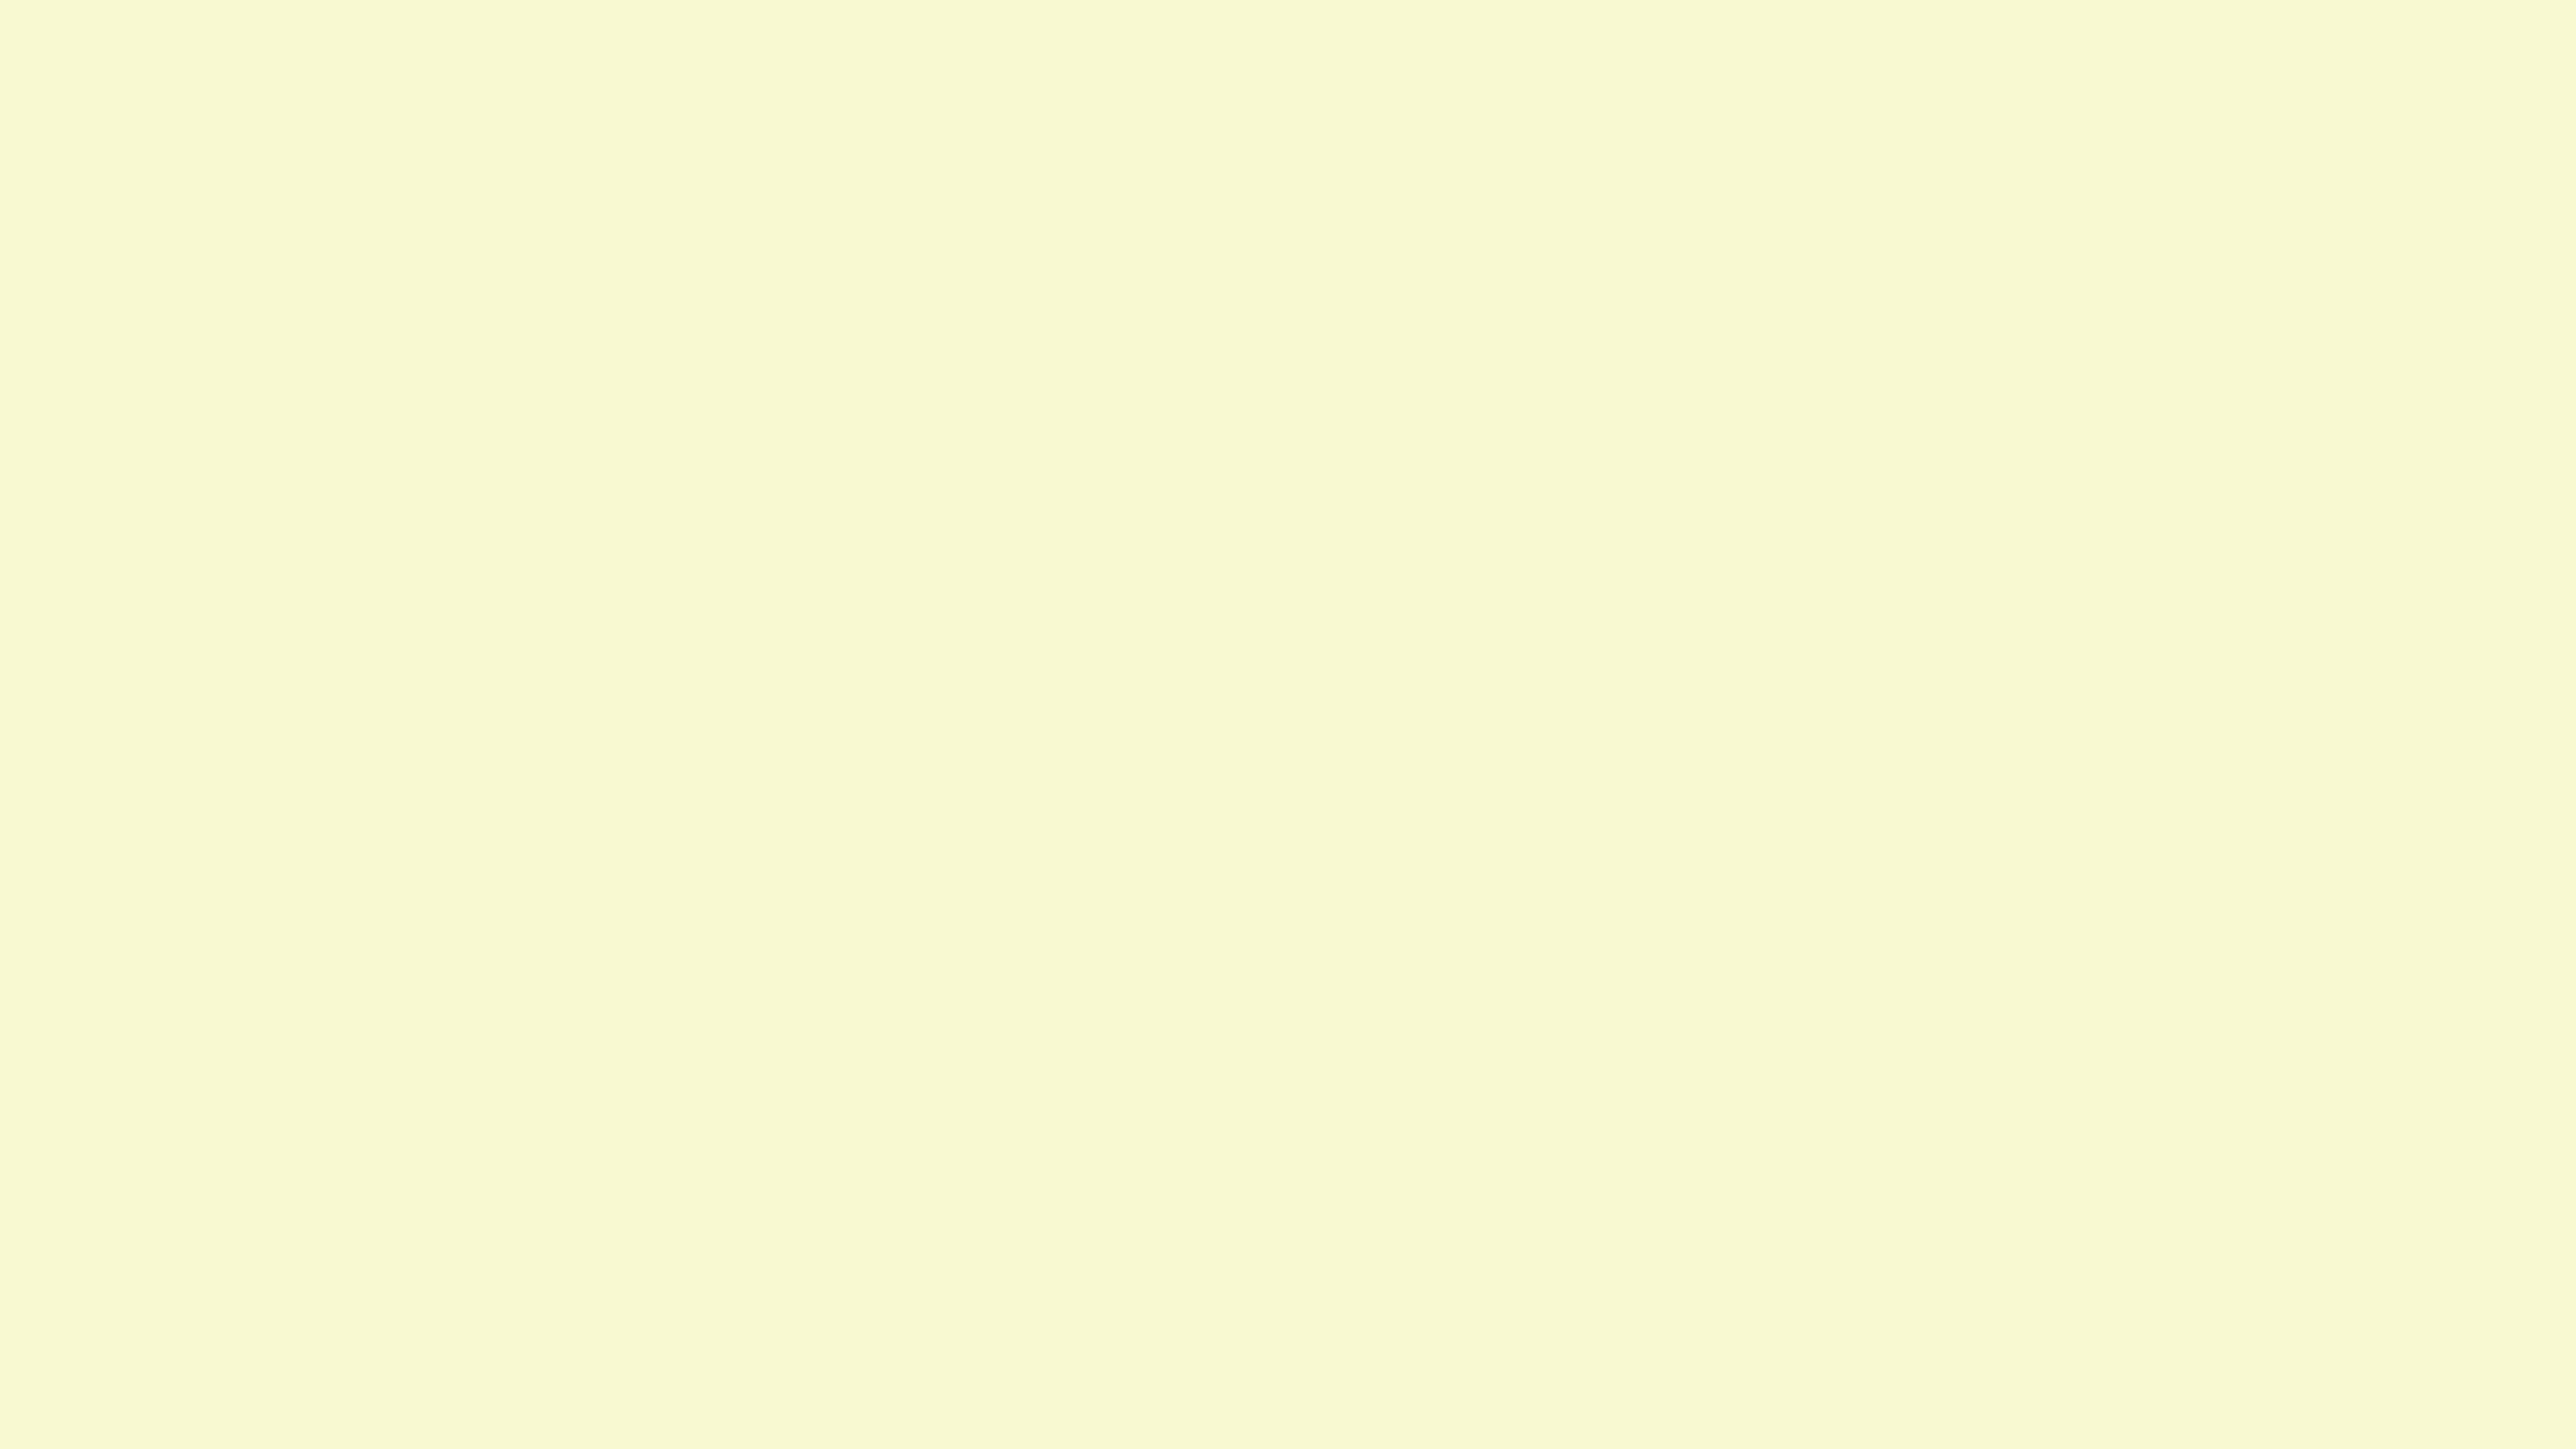 4096x2304 Light Goldenrod Yellow Solid Color Background